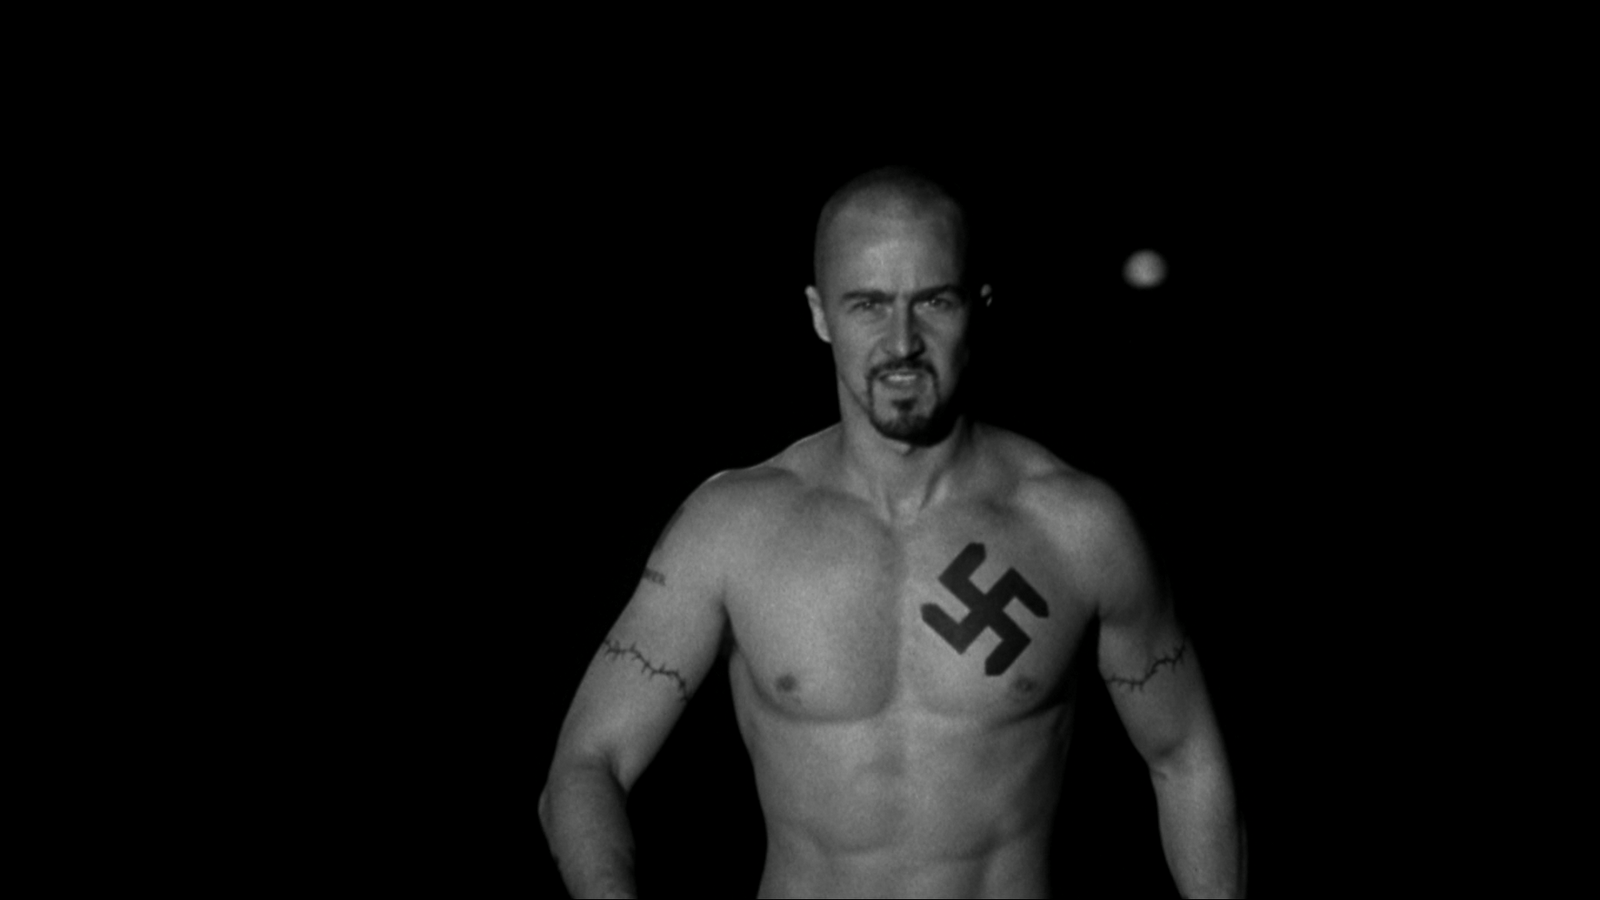 american history x message